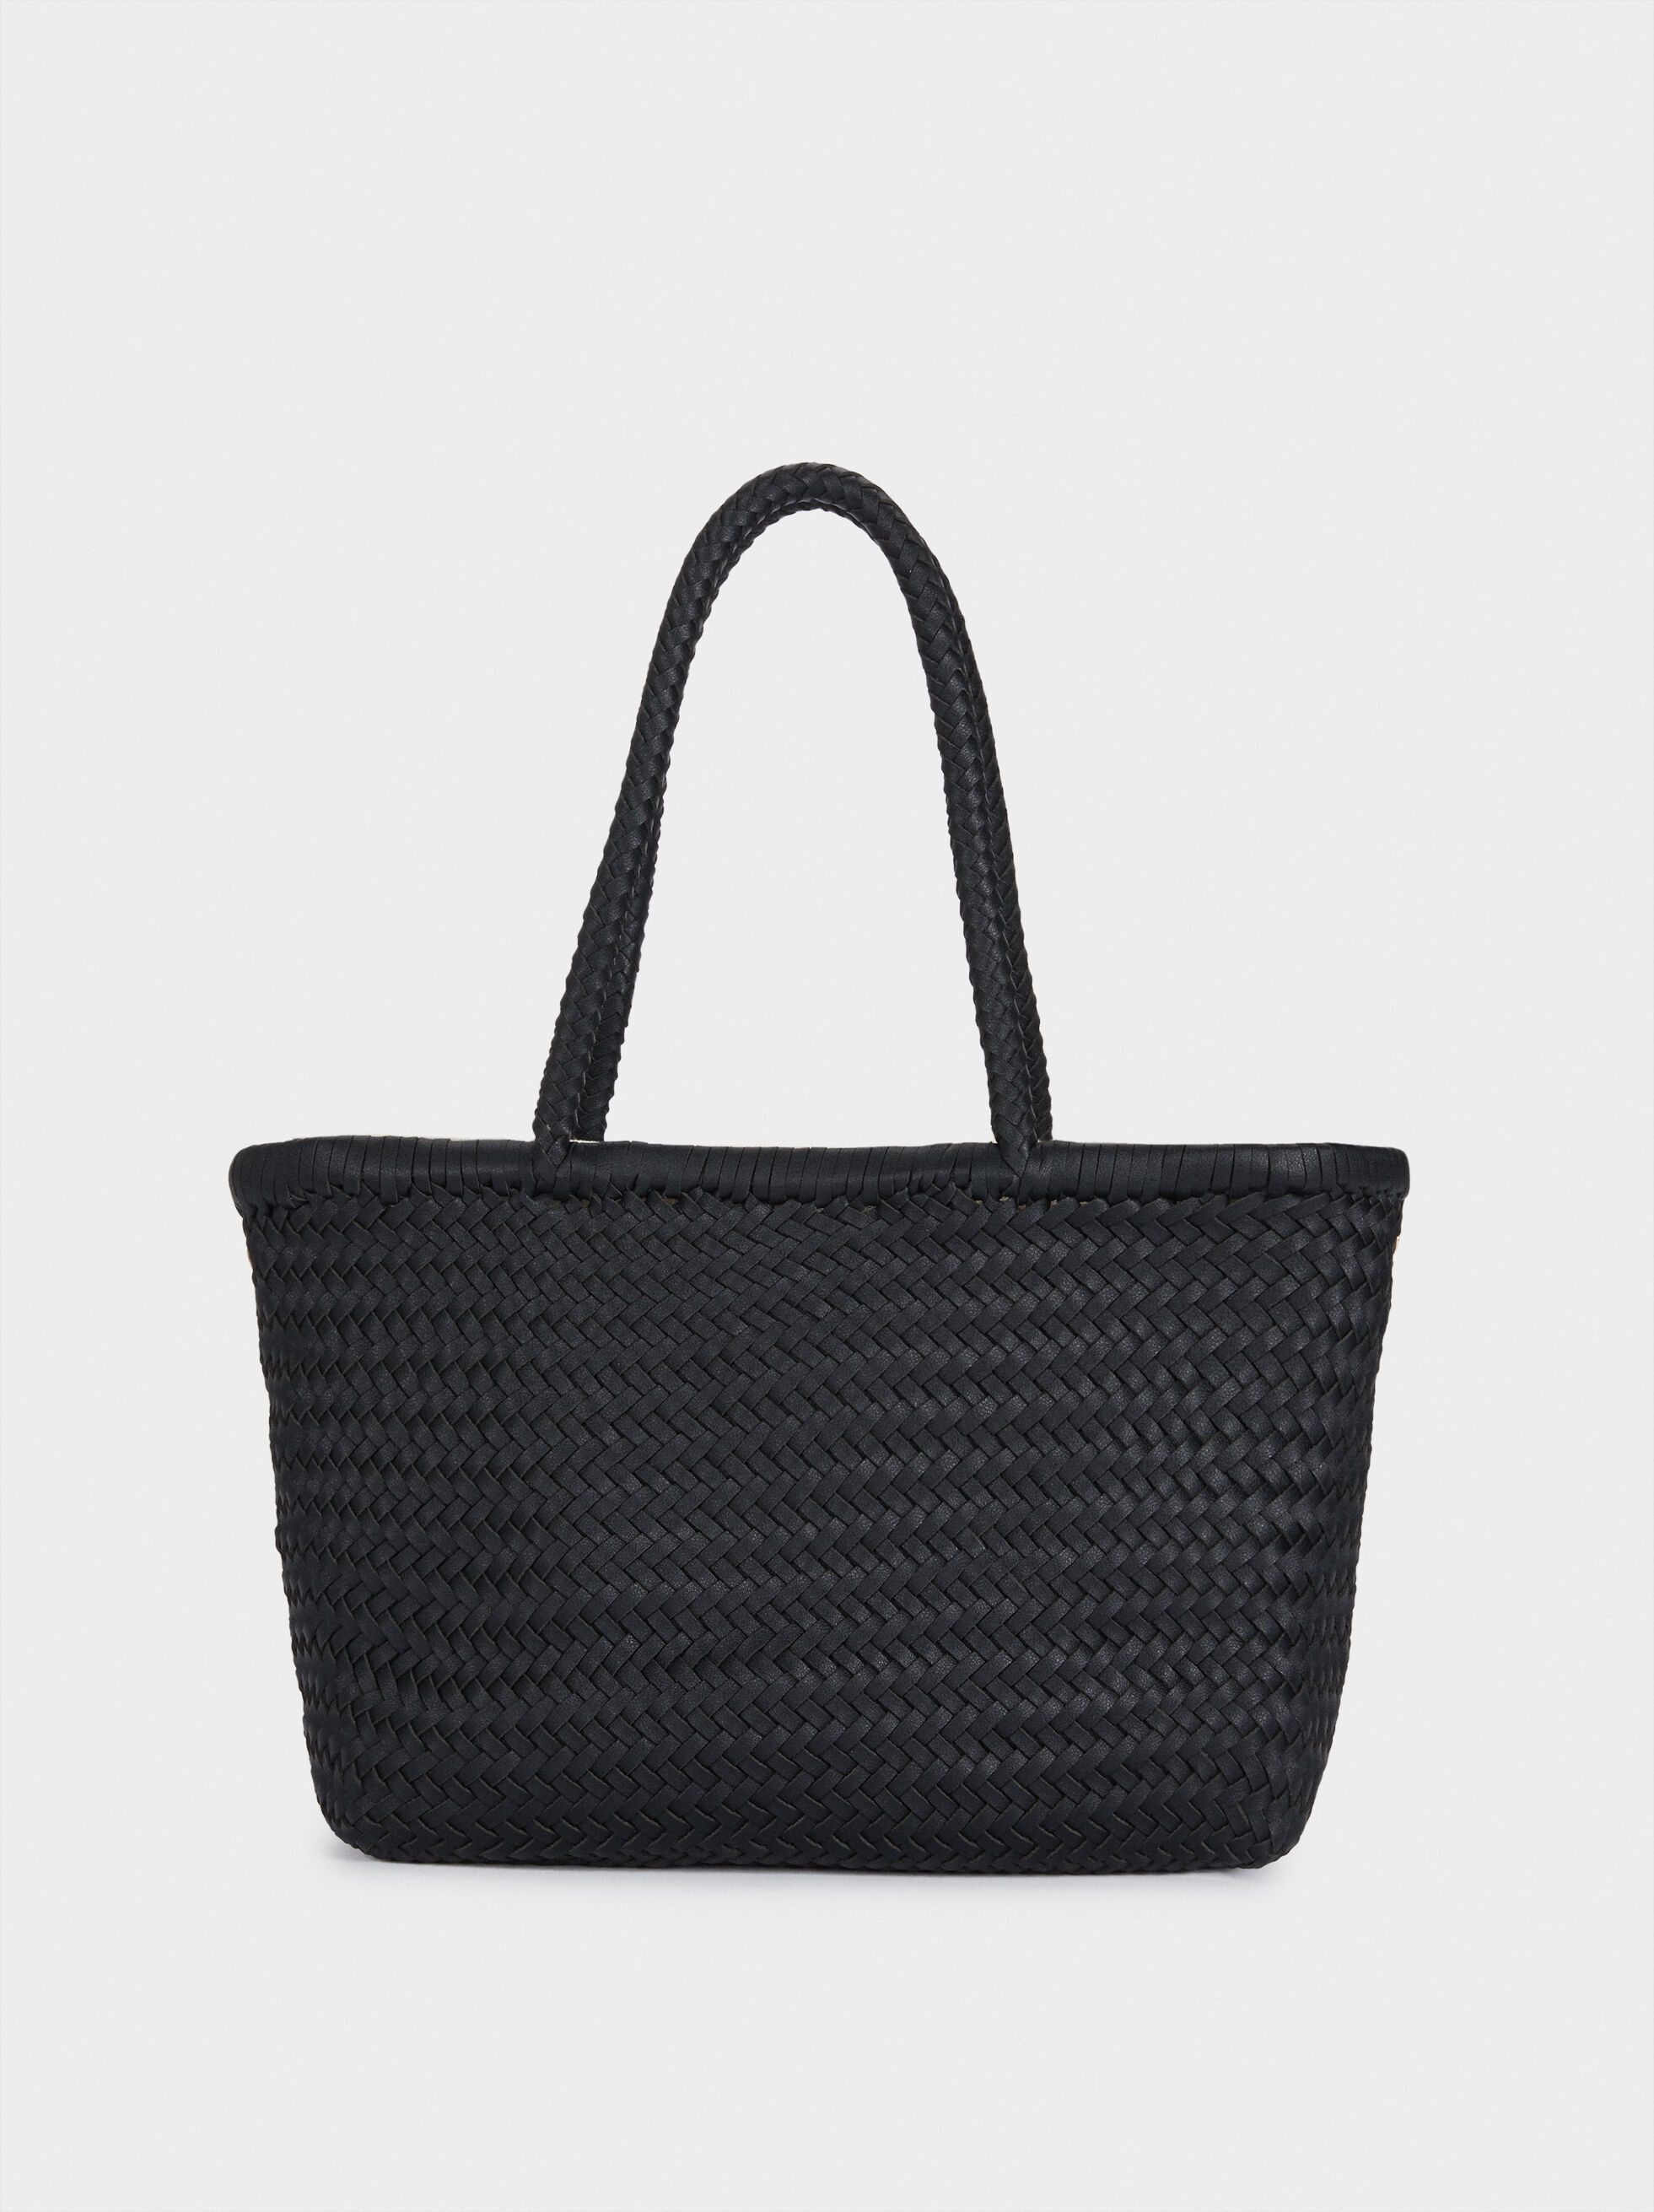 Hand Made Braided Tote Bag, , hi-res